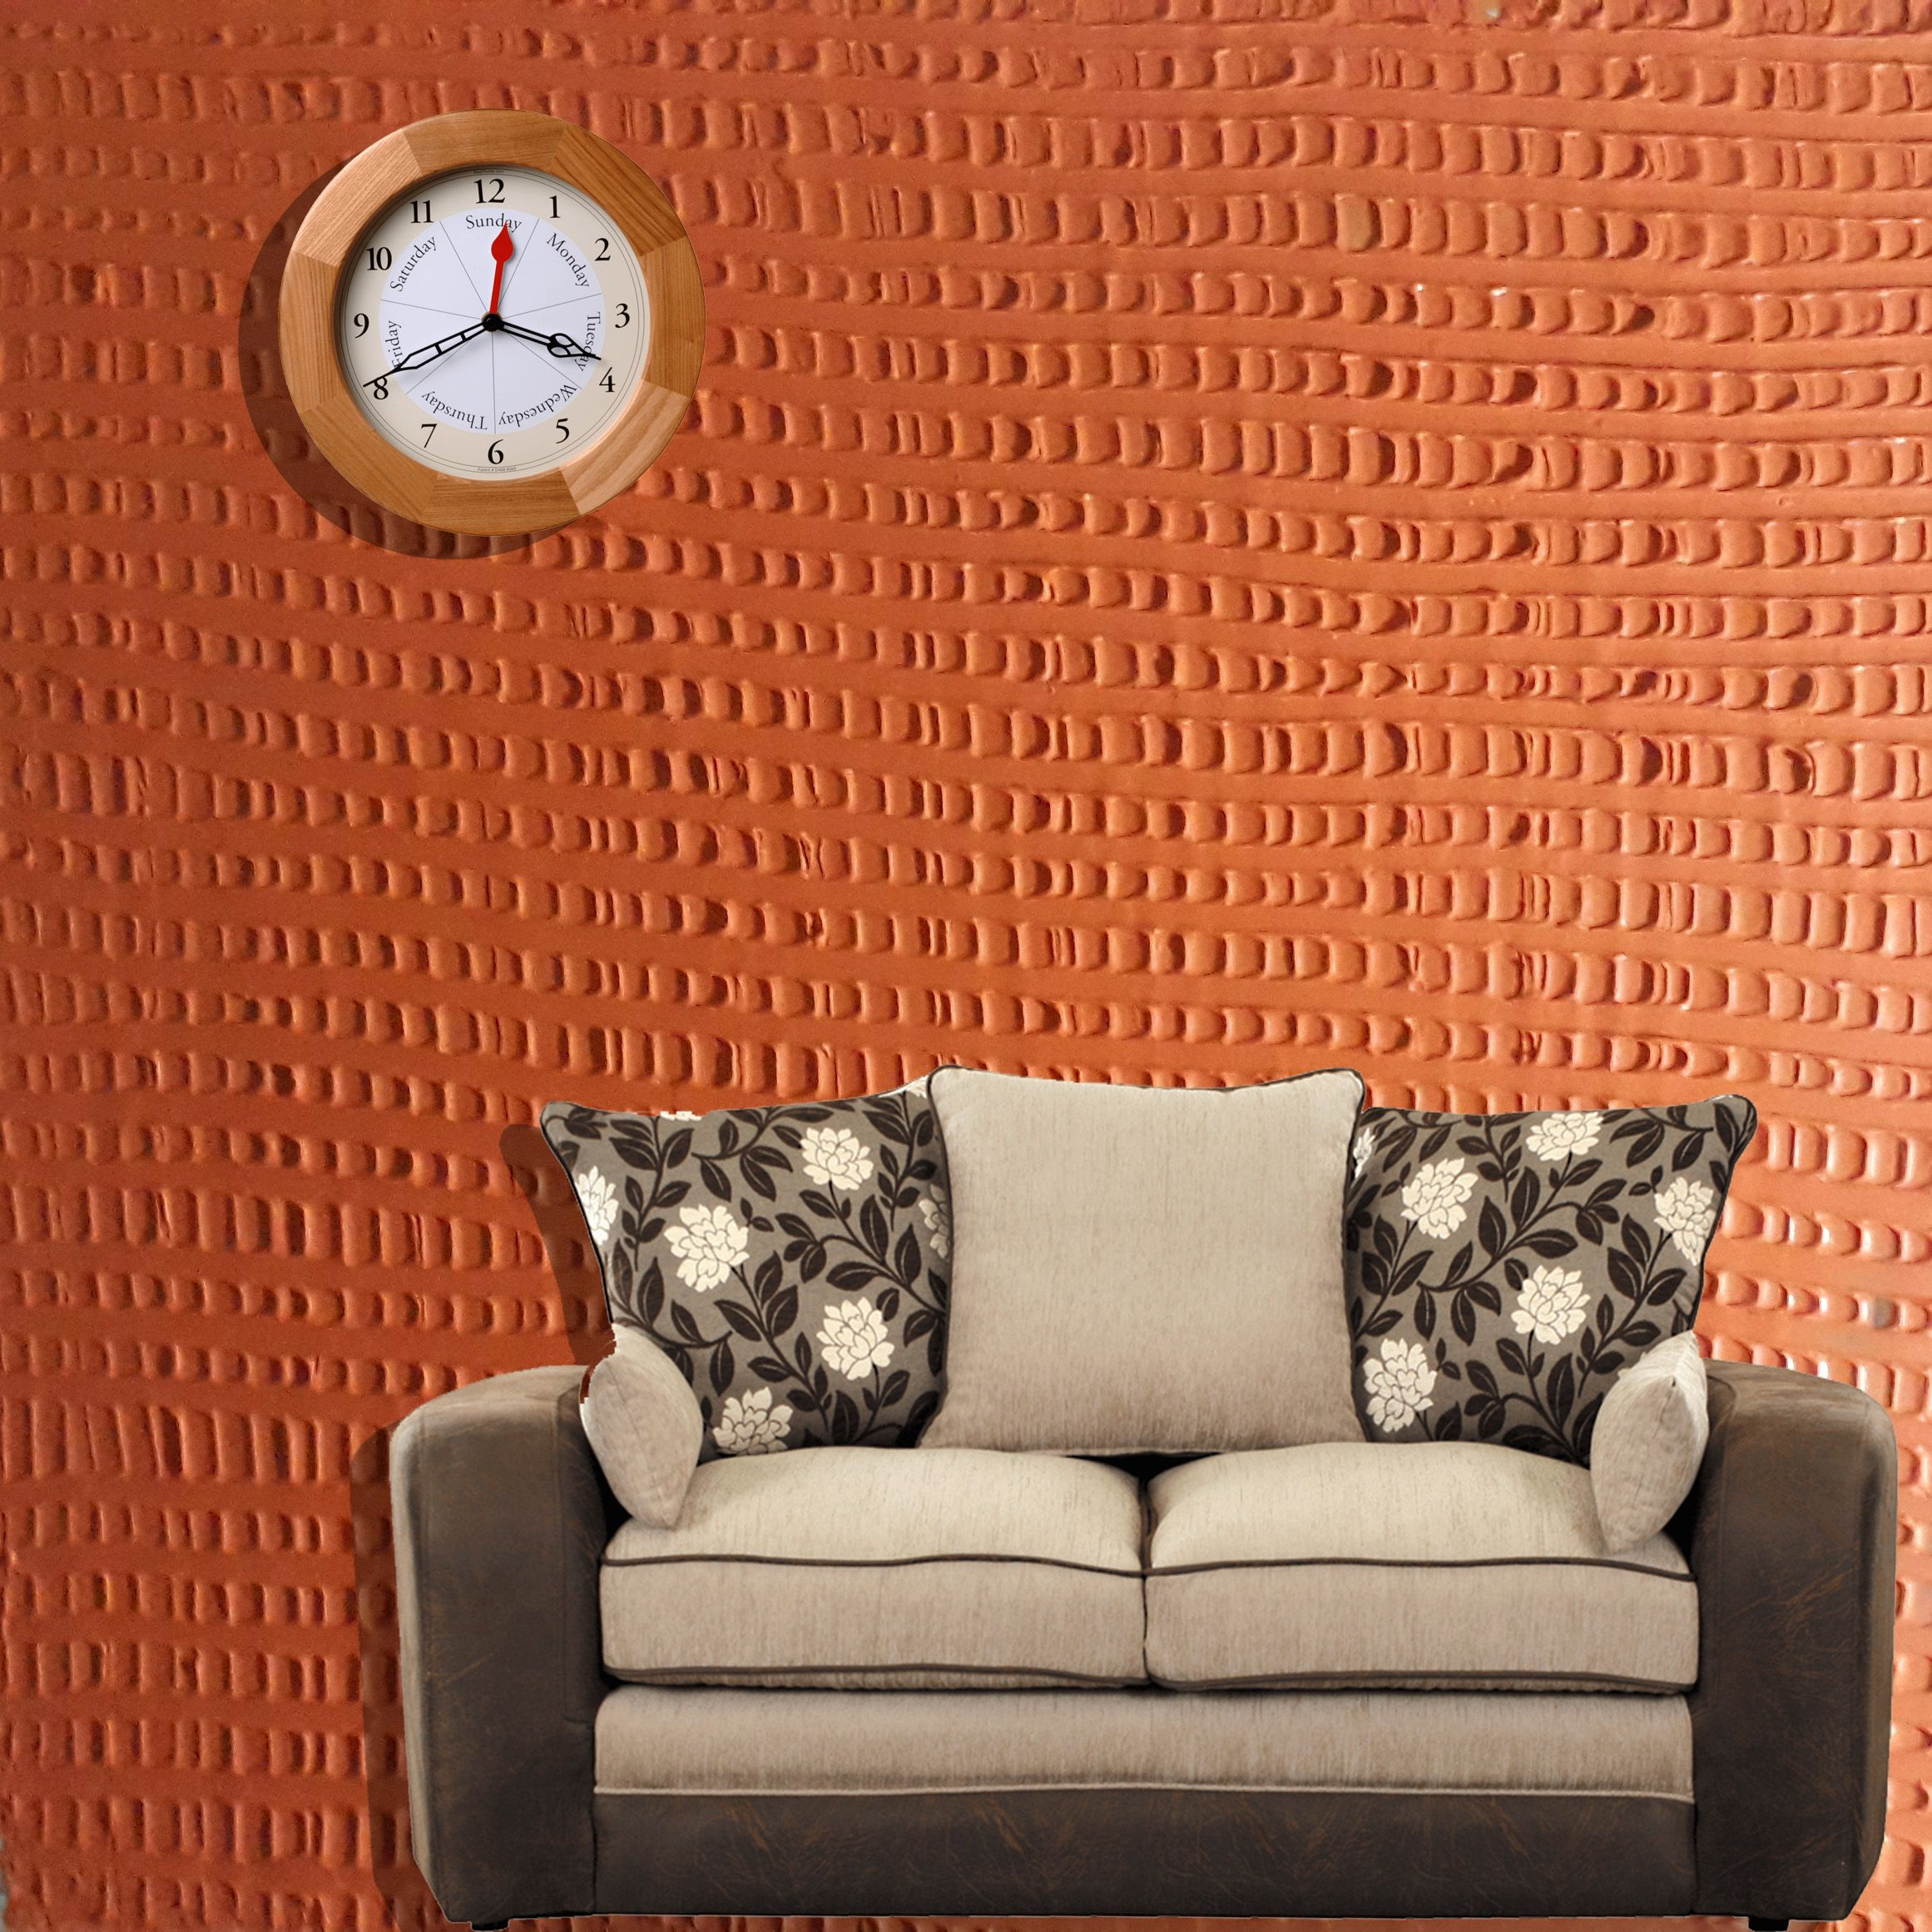 Decorative Texture On Dry Wall Wall Texture Design Diy Wall Painting Textured Wall